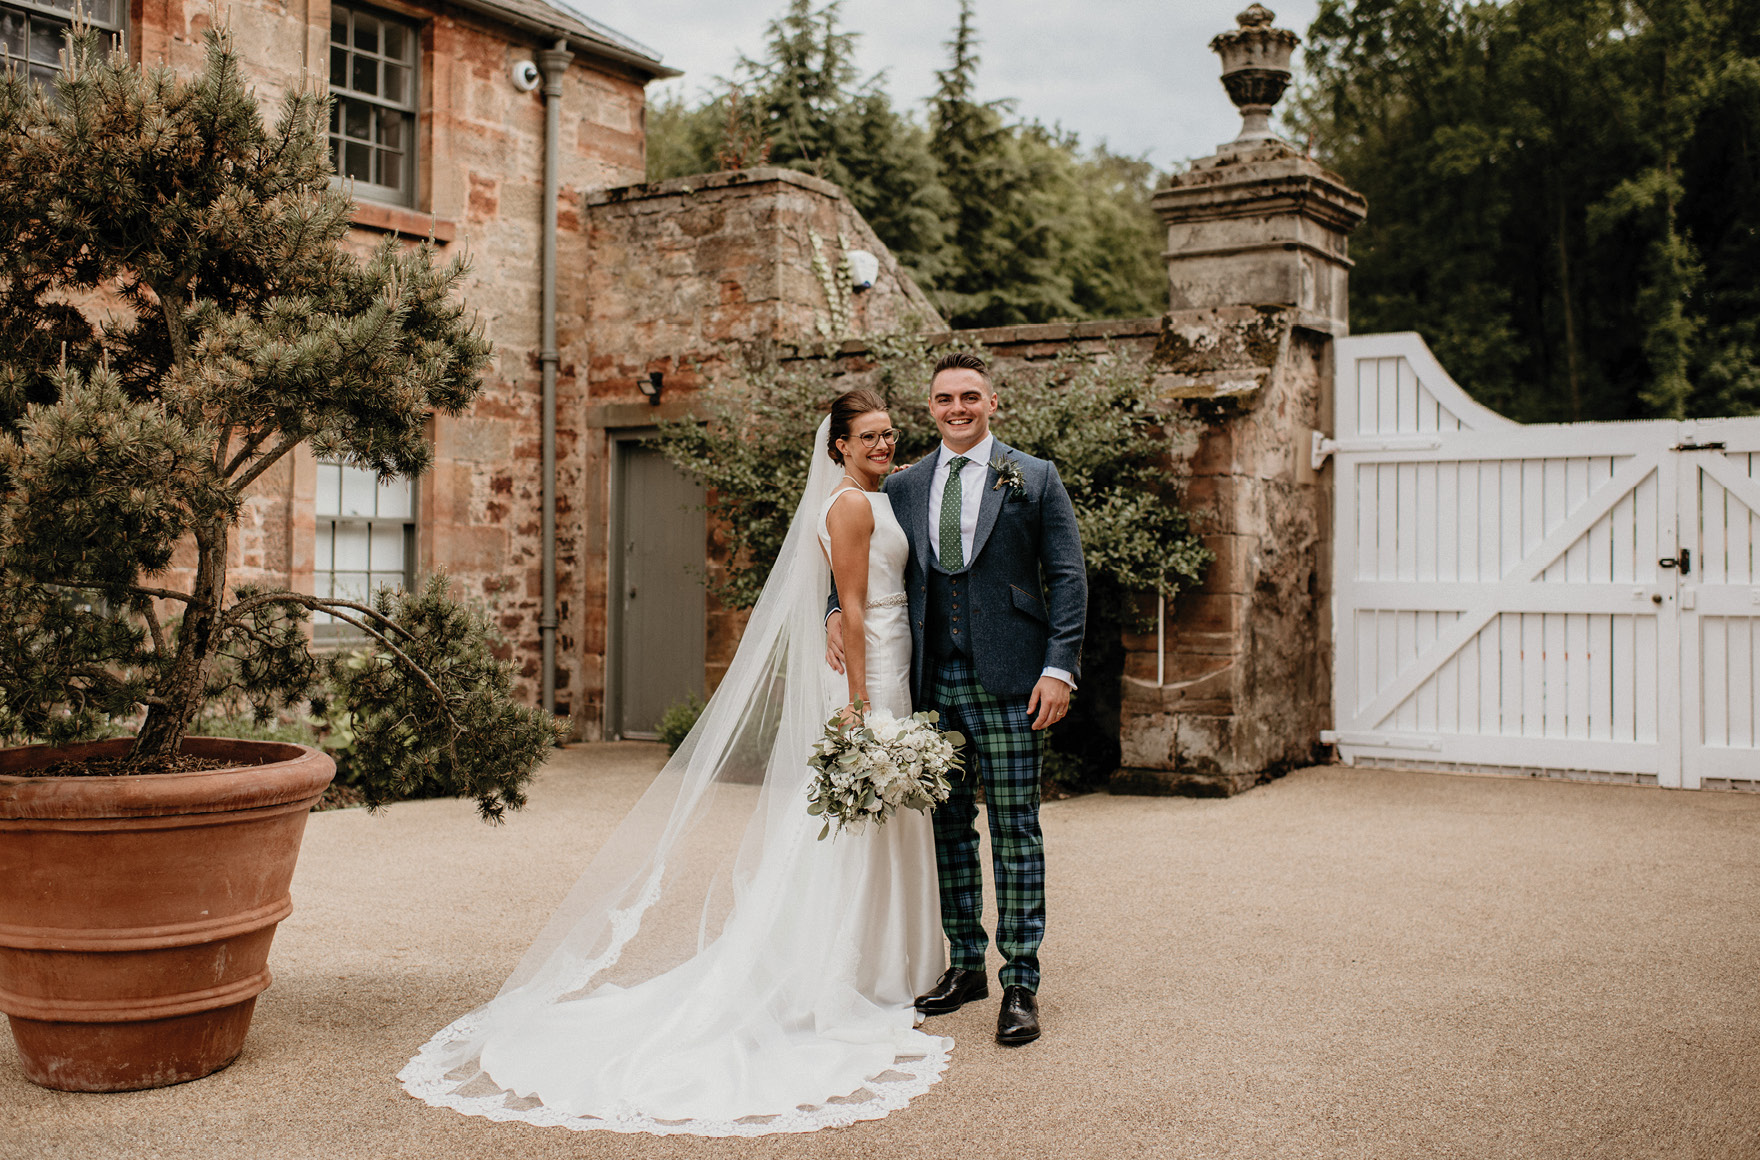 Make an enquiry to hold a wedding at Restoration Yard